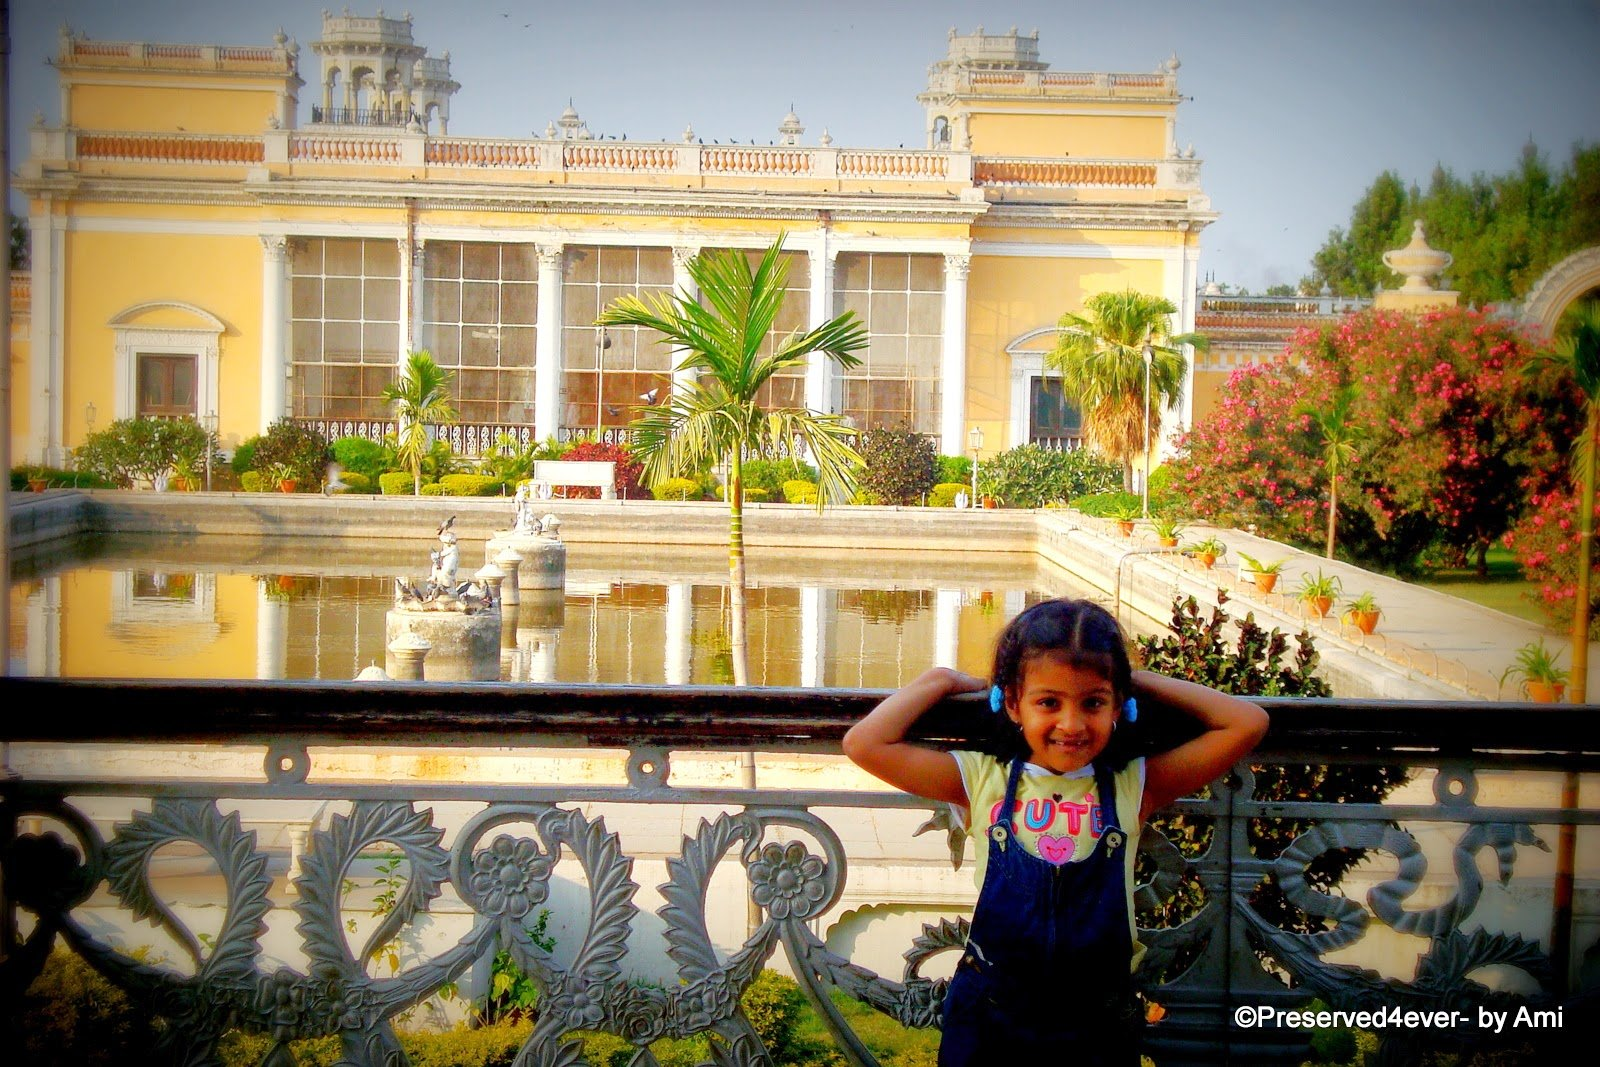 One of the Palaces at Chowmahalla, Hyderabad